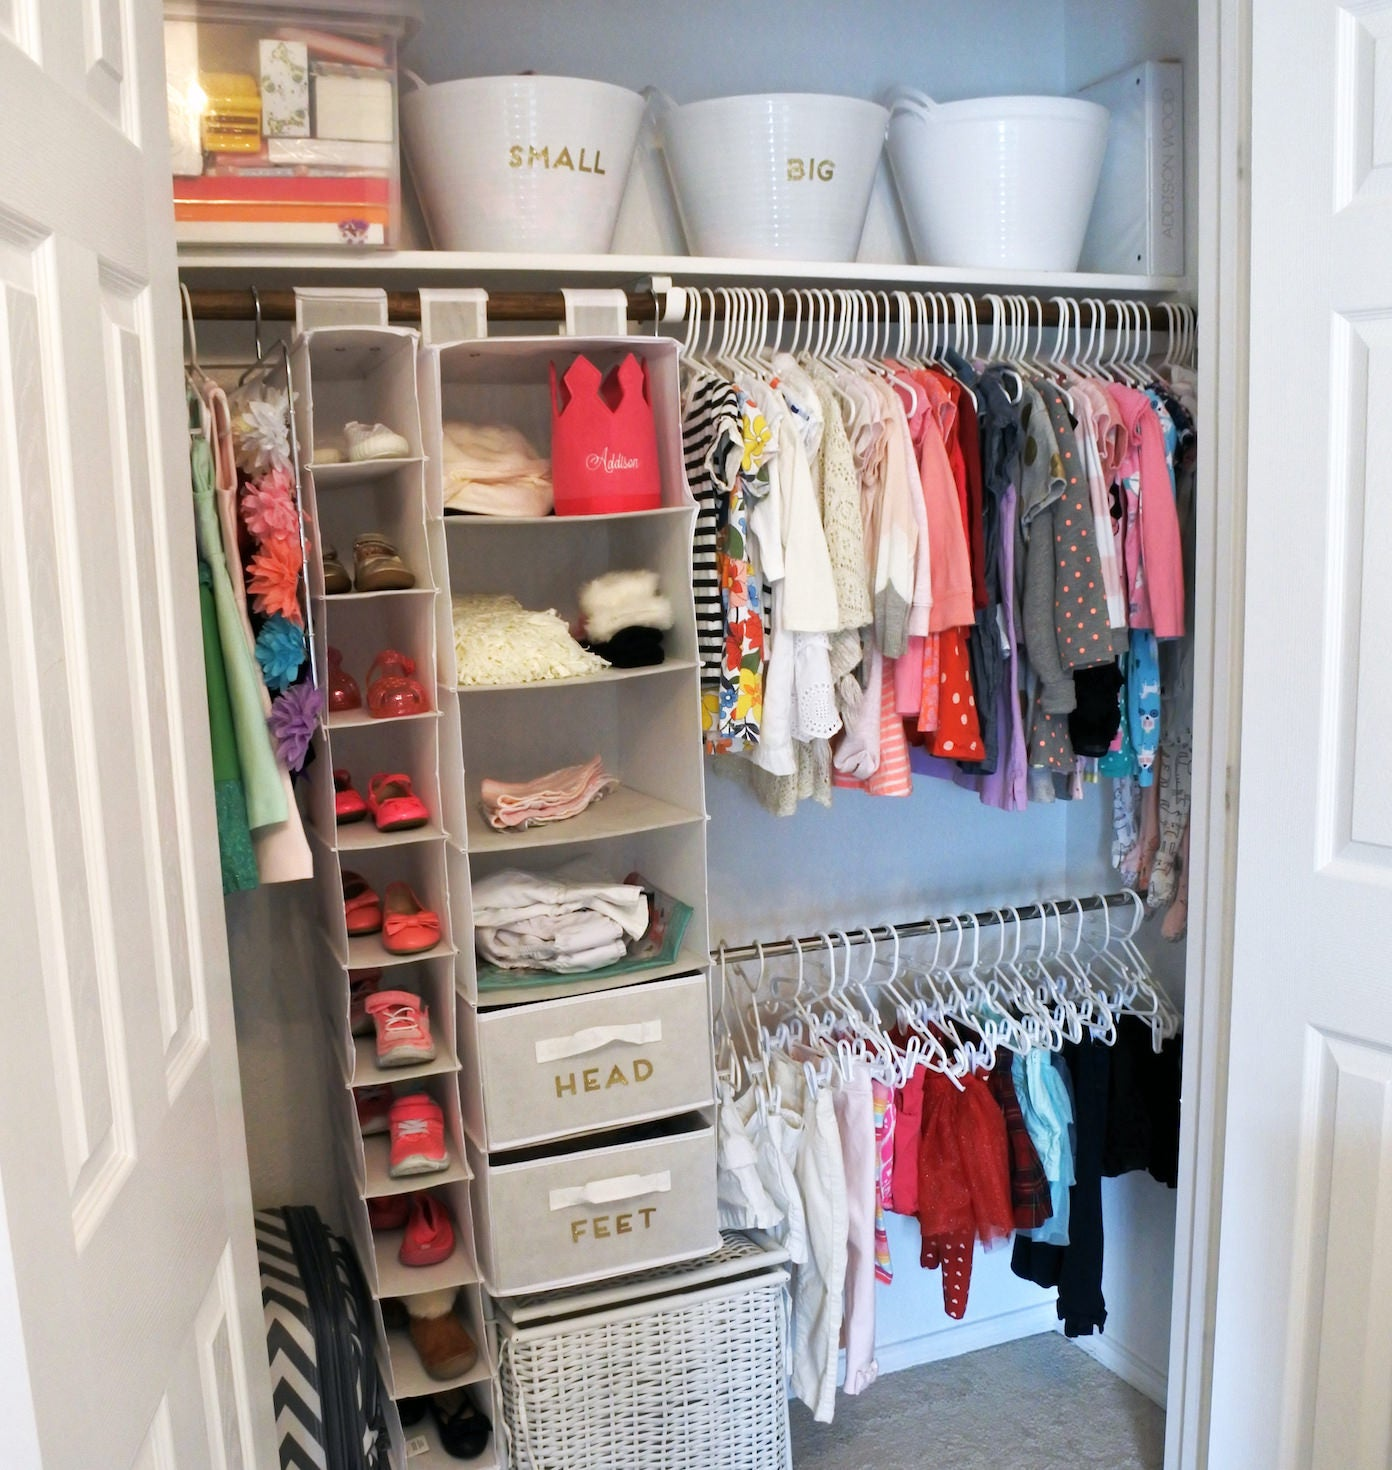 Valerie Wood, Dallas, Texas, TX, neat method, home organizing, professional organizer, organizing, moving